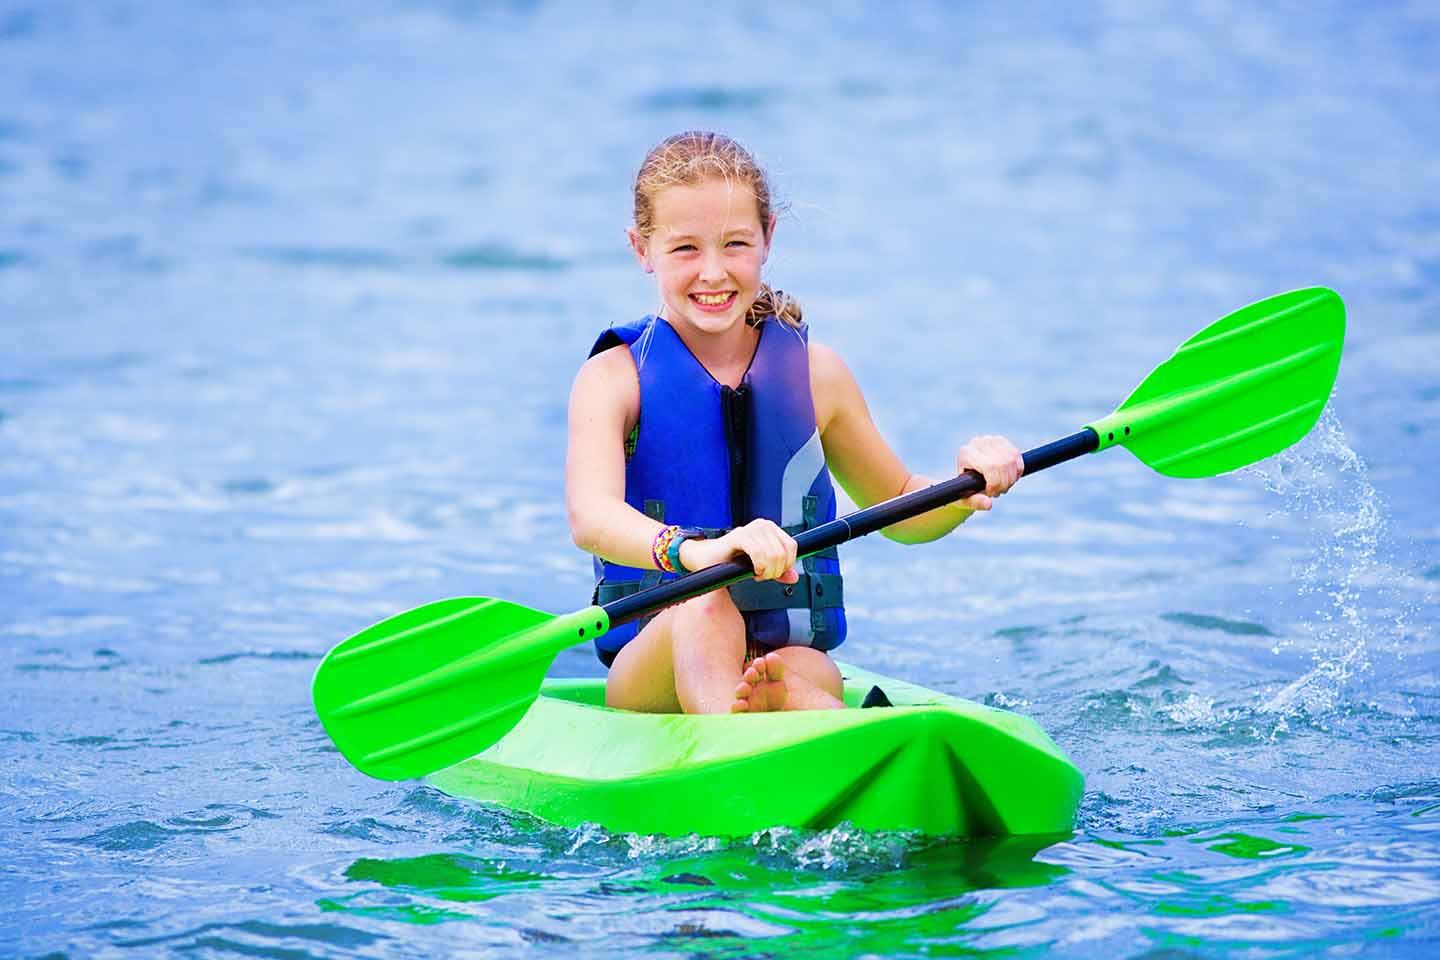 Young girl kayaking in clear water